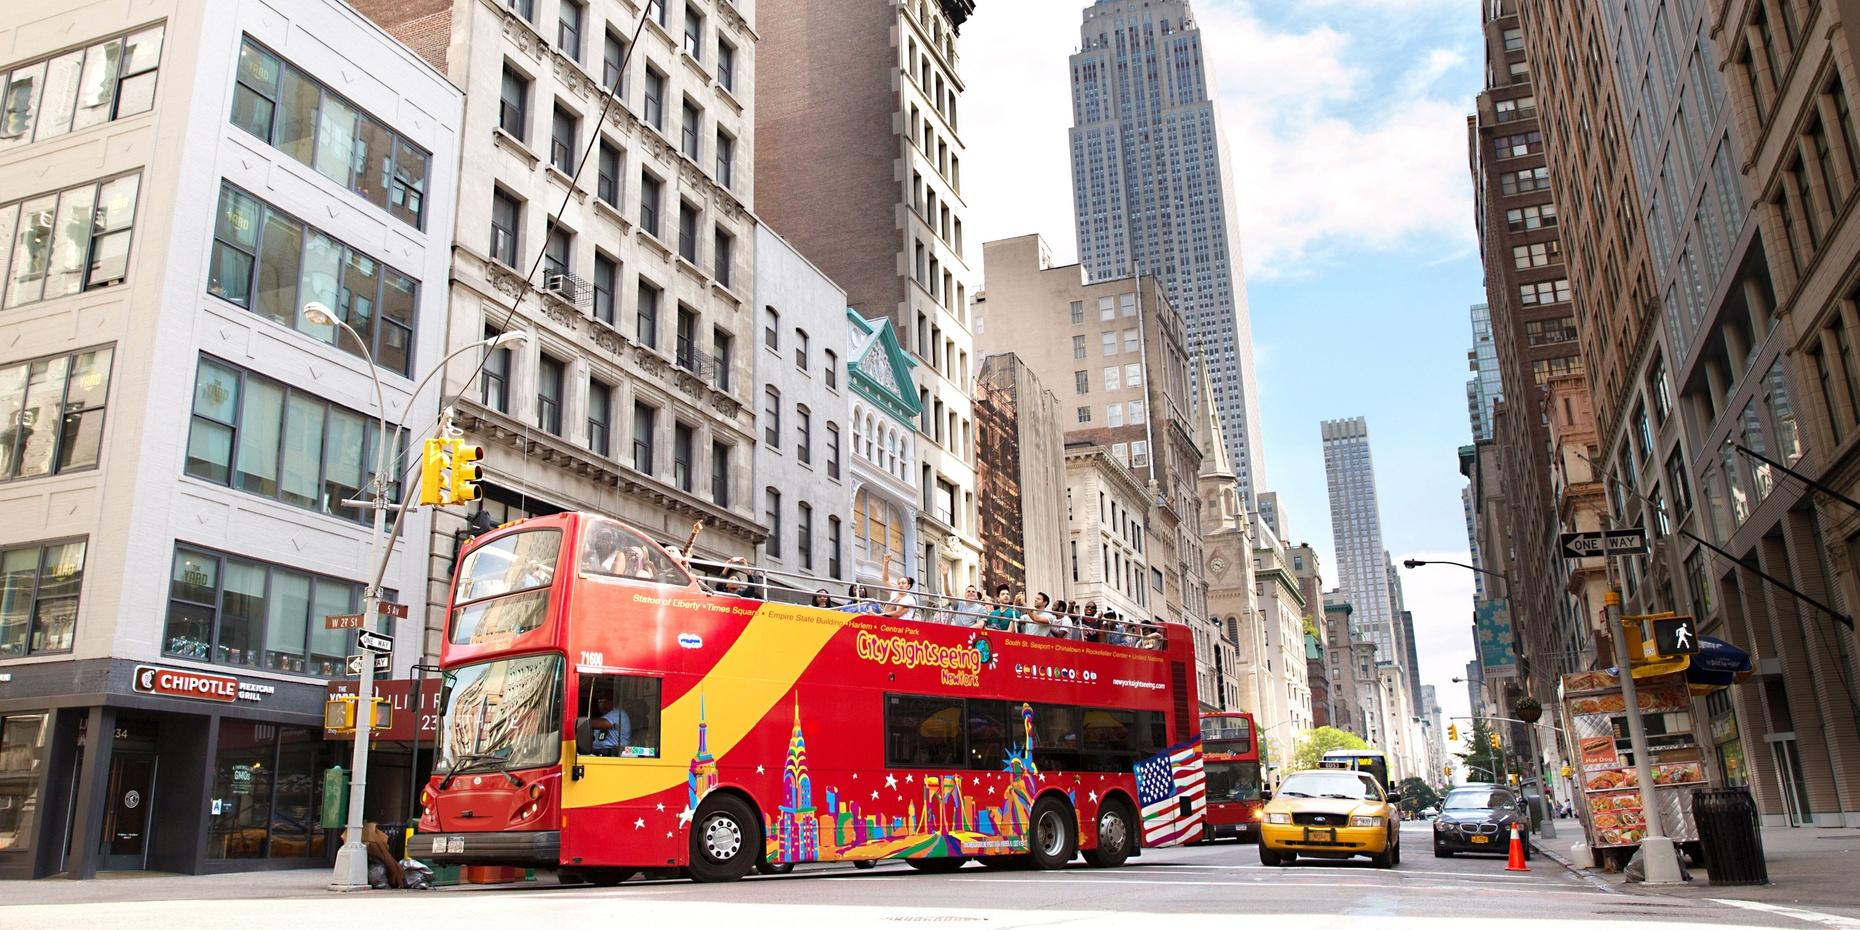 Hop-On Hop-Off Tour of Downtown New York